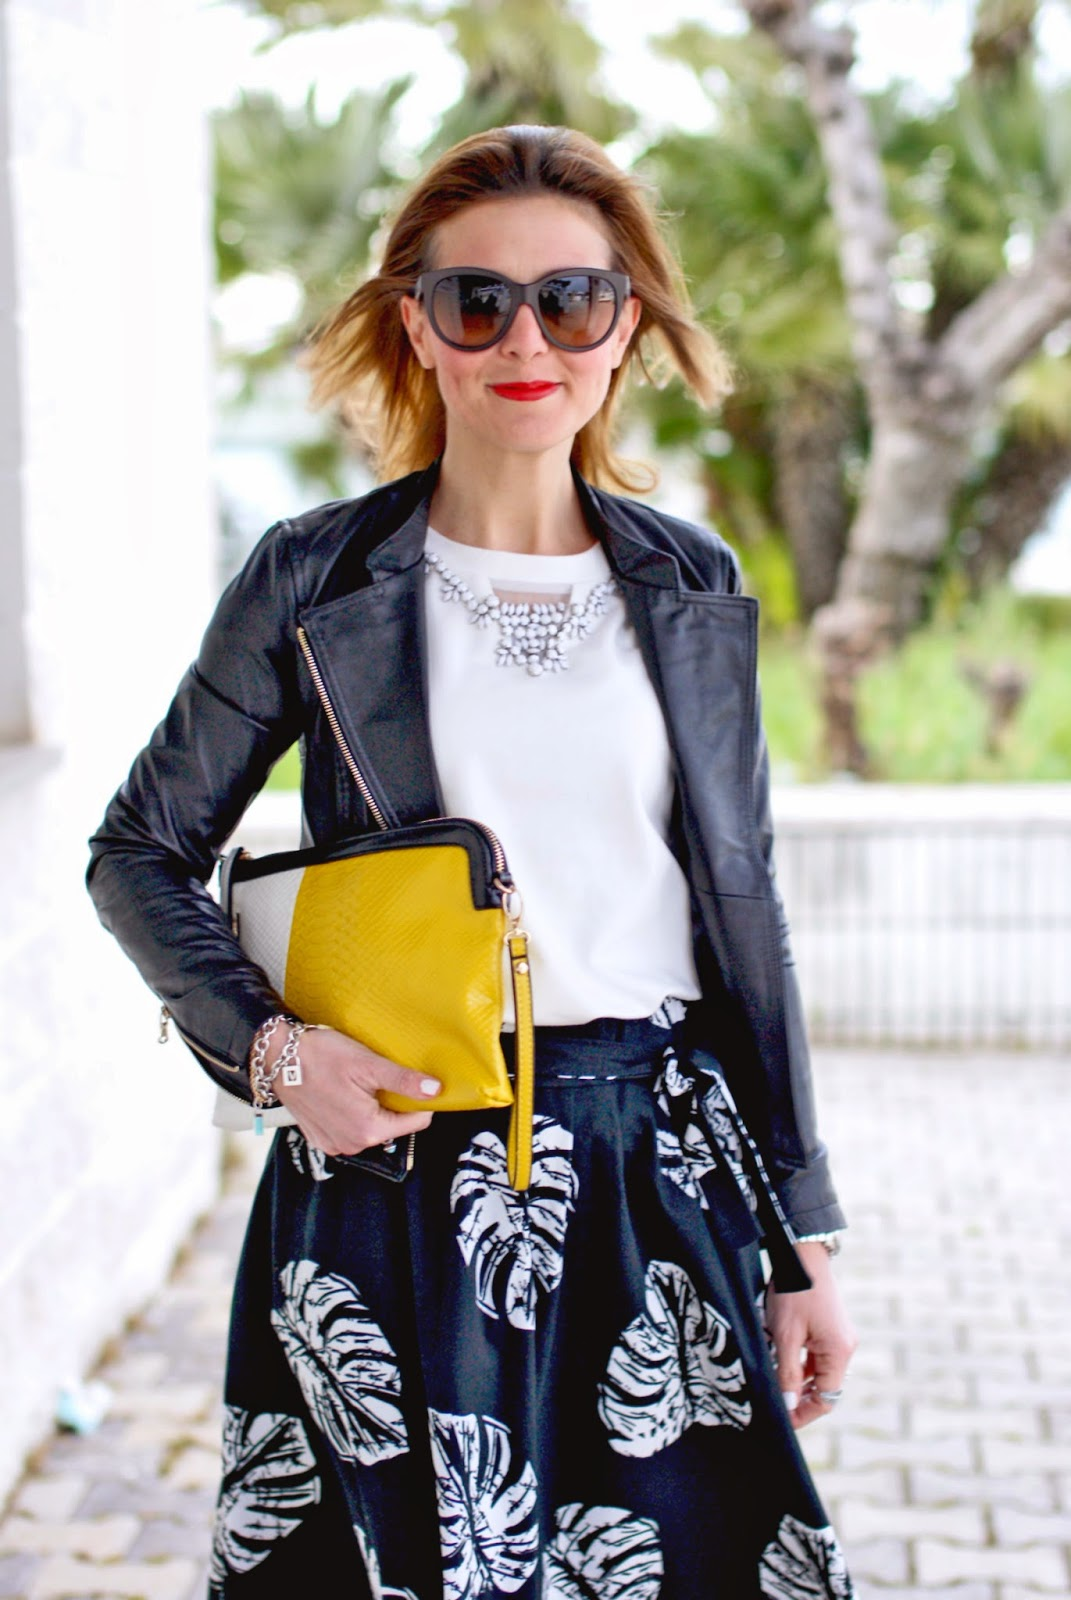 Giorgia & Johns felpa pietre e tulle, jeweled sweatshirt, leather peplum jacket, palm leaves print skirt, Loriblu heels, Fashion and Cookies, fashion blogger